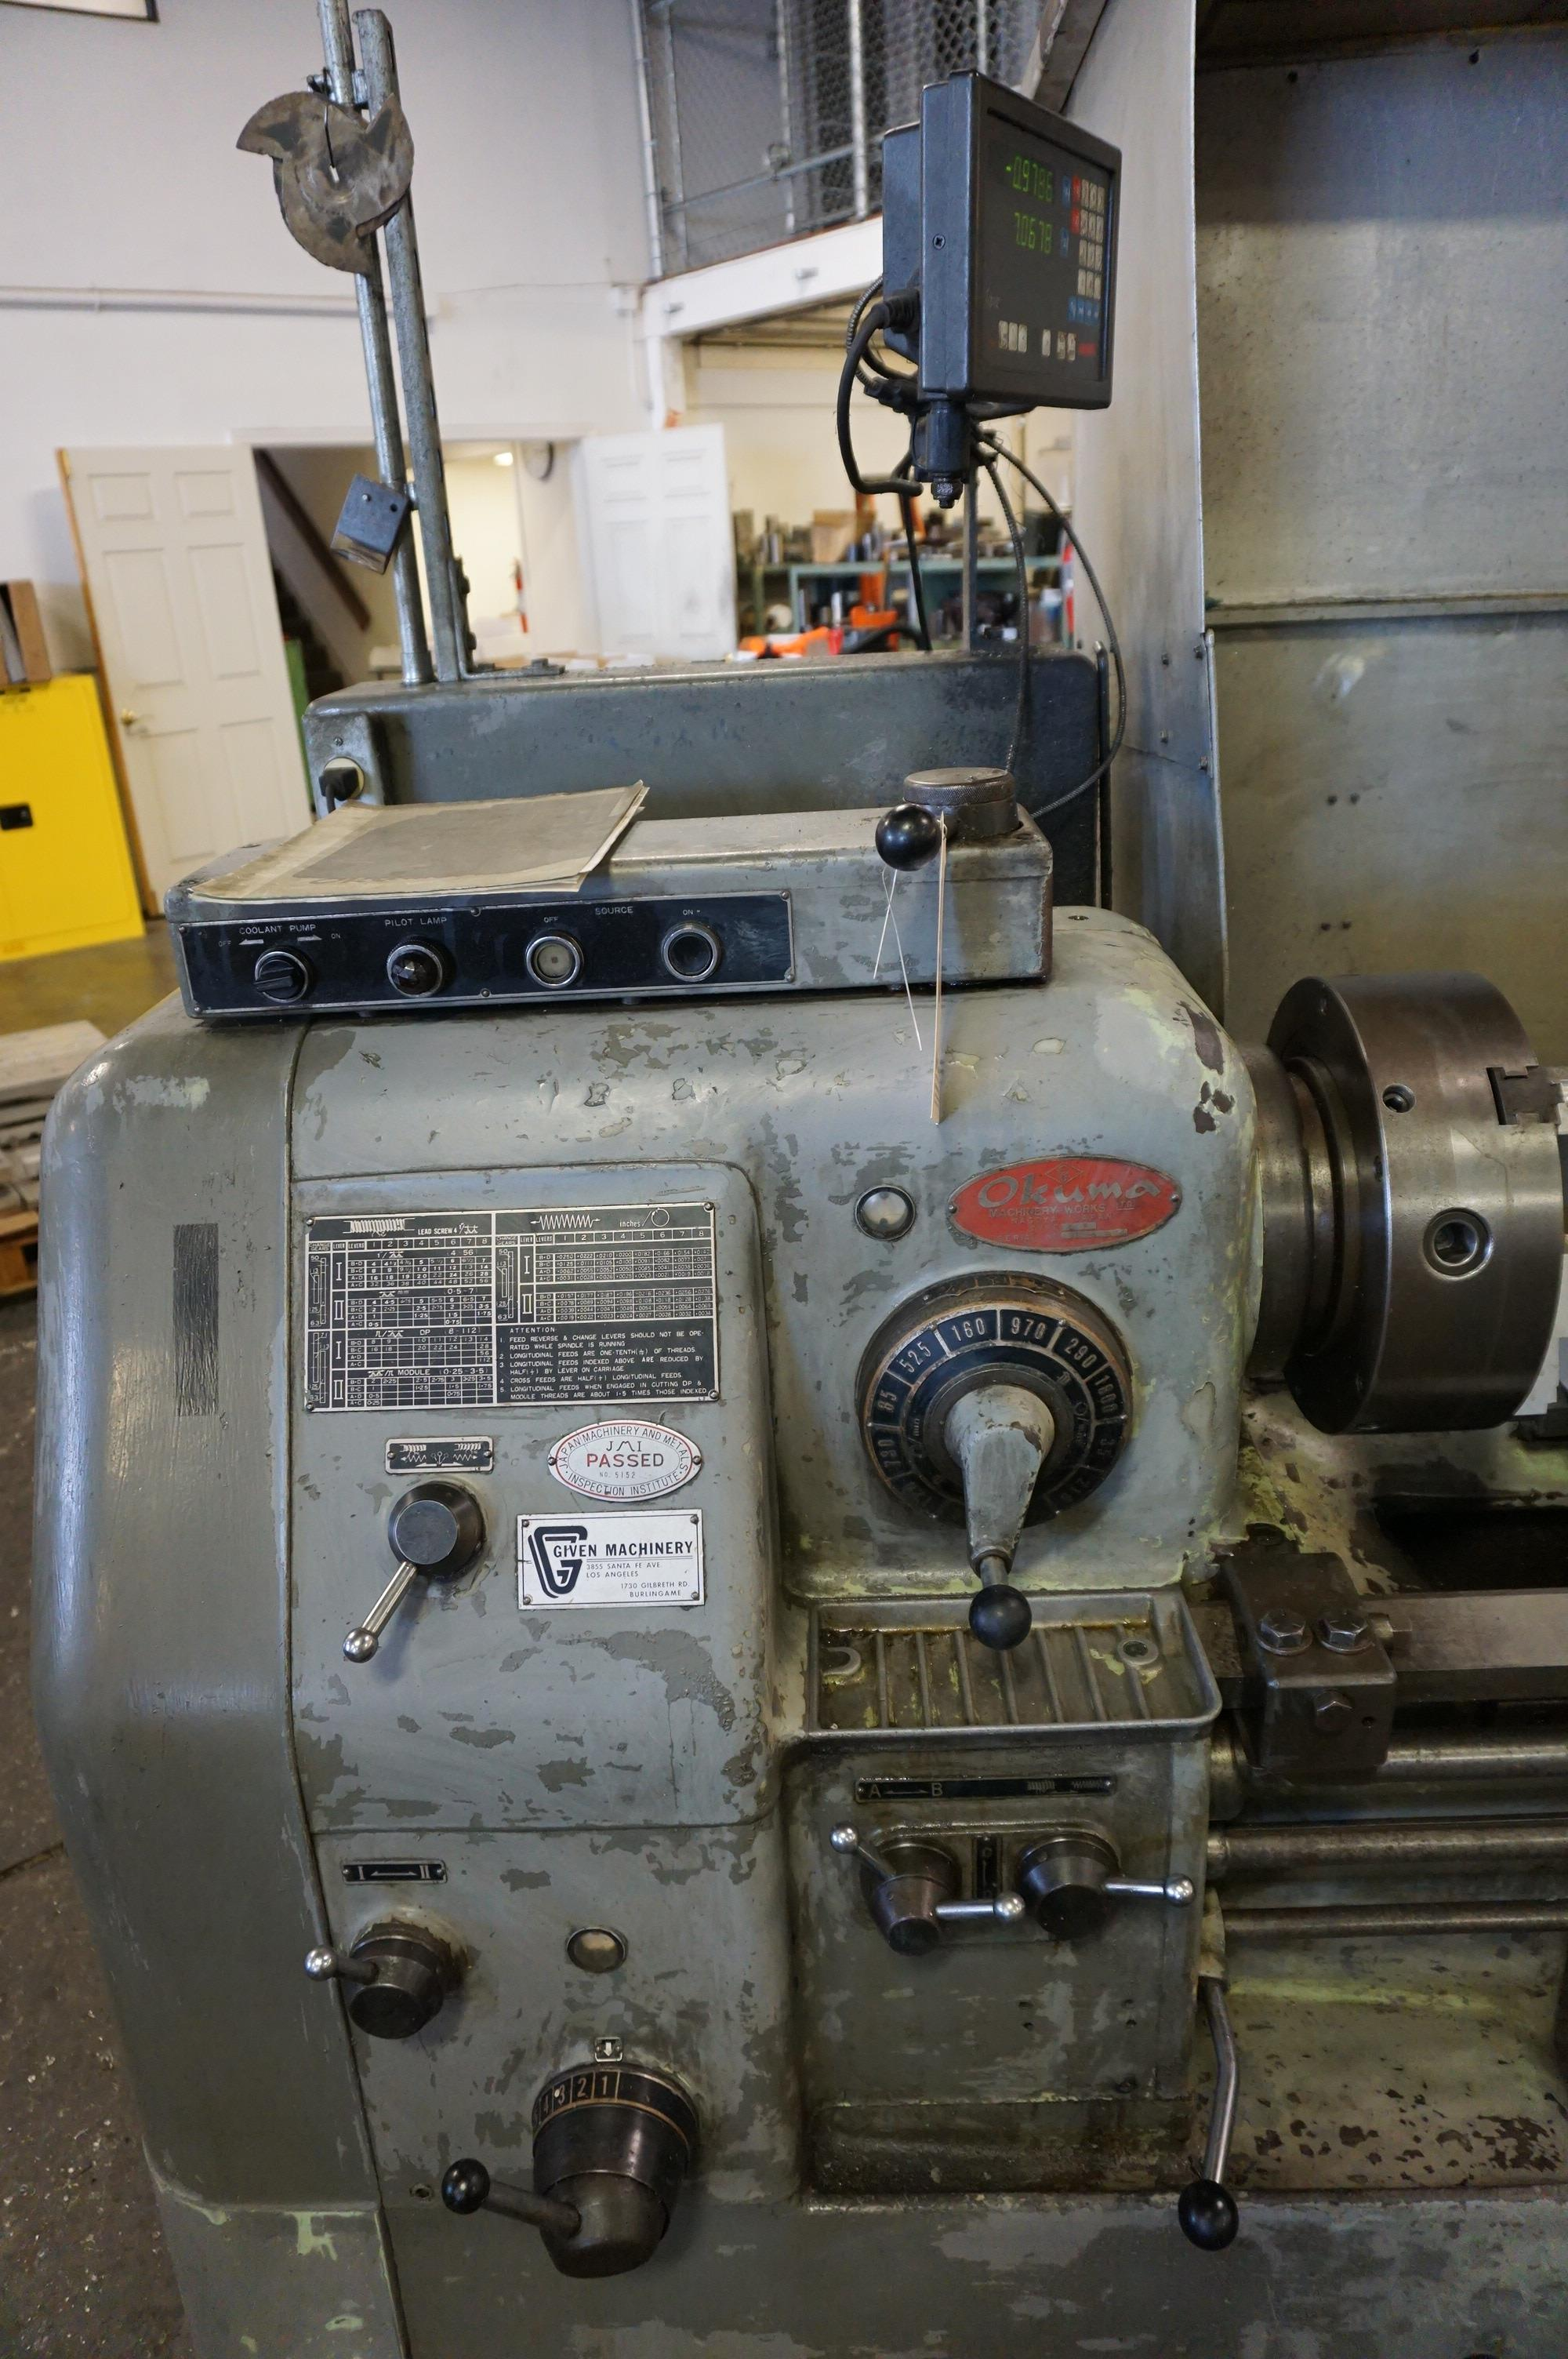 """OKUMA LS 16"""" x 47"""" SWING, S/N 4012-8916 WITH NEWALL TOPAZ DRO, WITH CATALOG, CHUCK, AND TOOL - Image 3 of 8"""